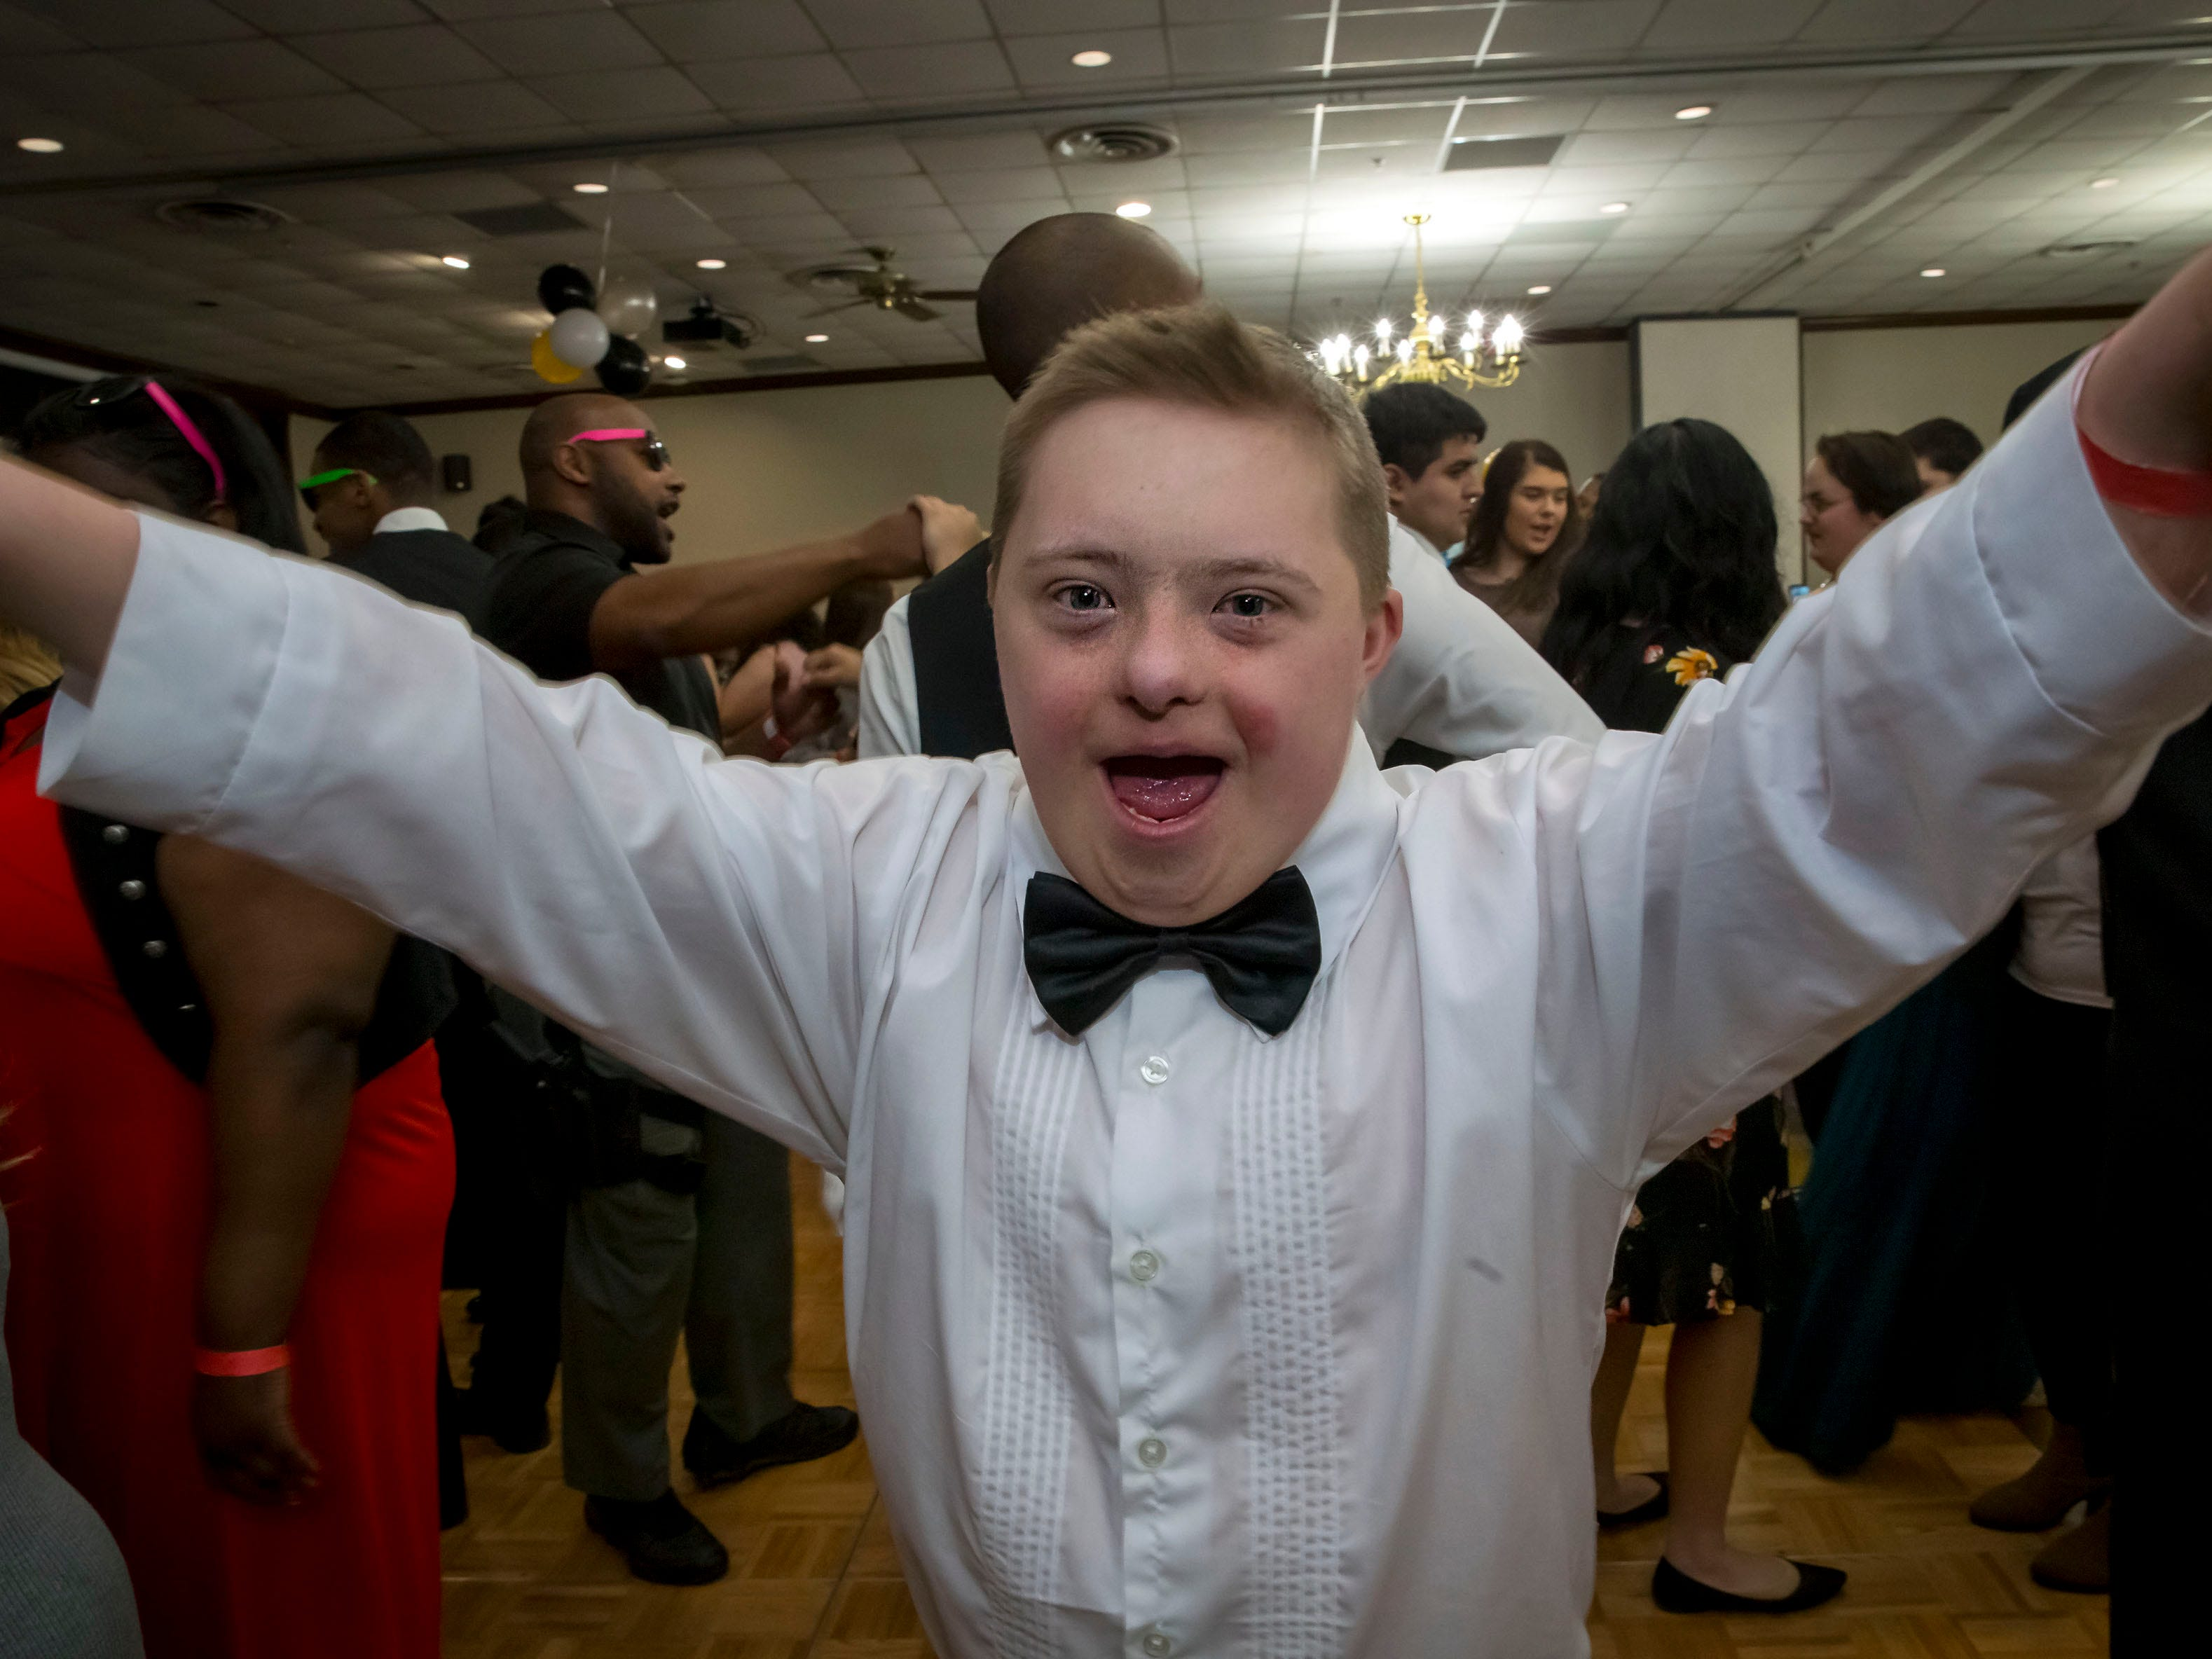 John Mangold dances at the Rutherford County Schools special needs prom held at Smyrna Event Center.